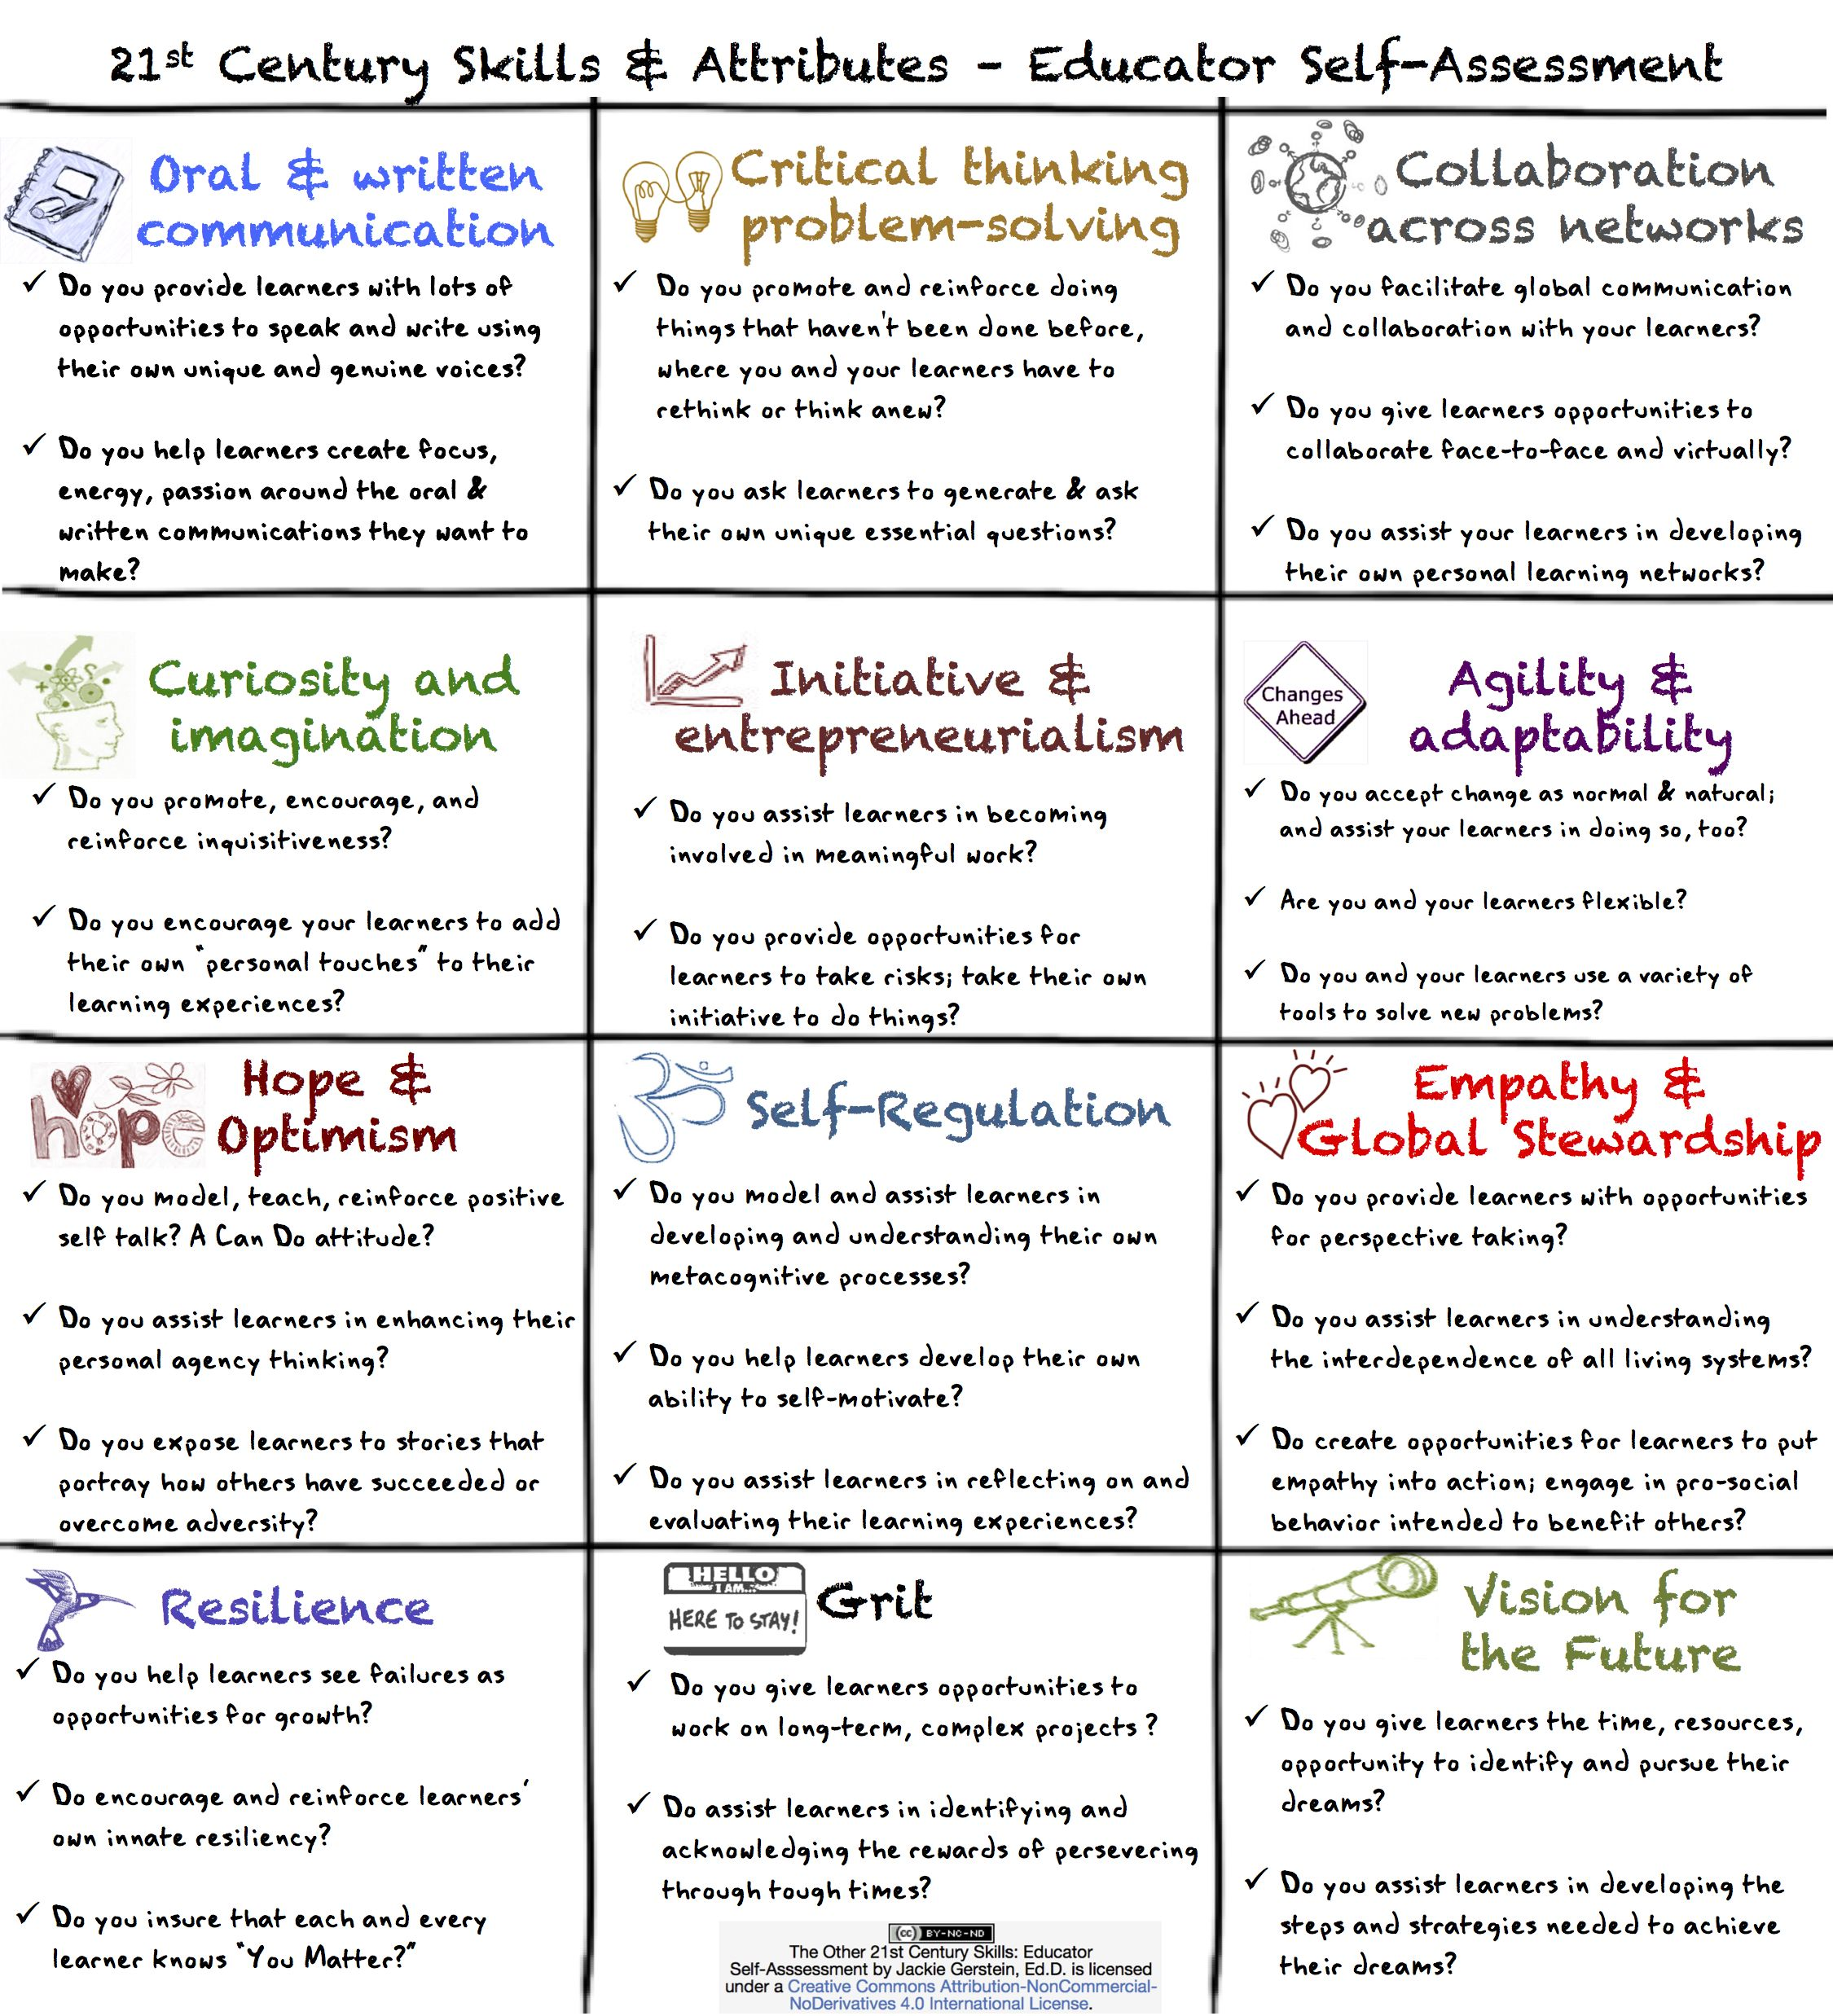 the other st century skills educator self assessment thinking 21st century skills